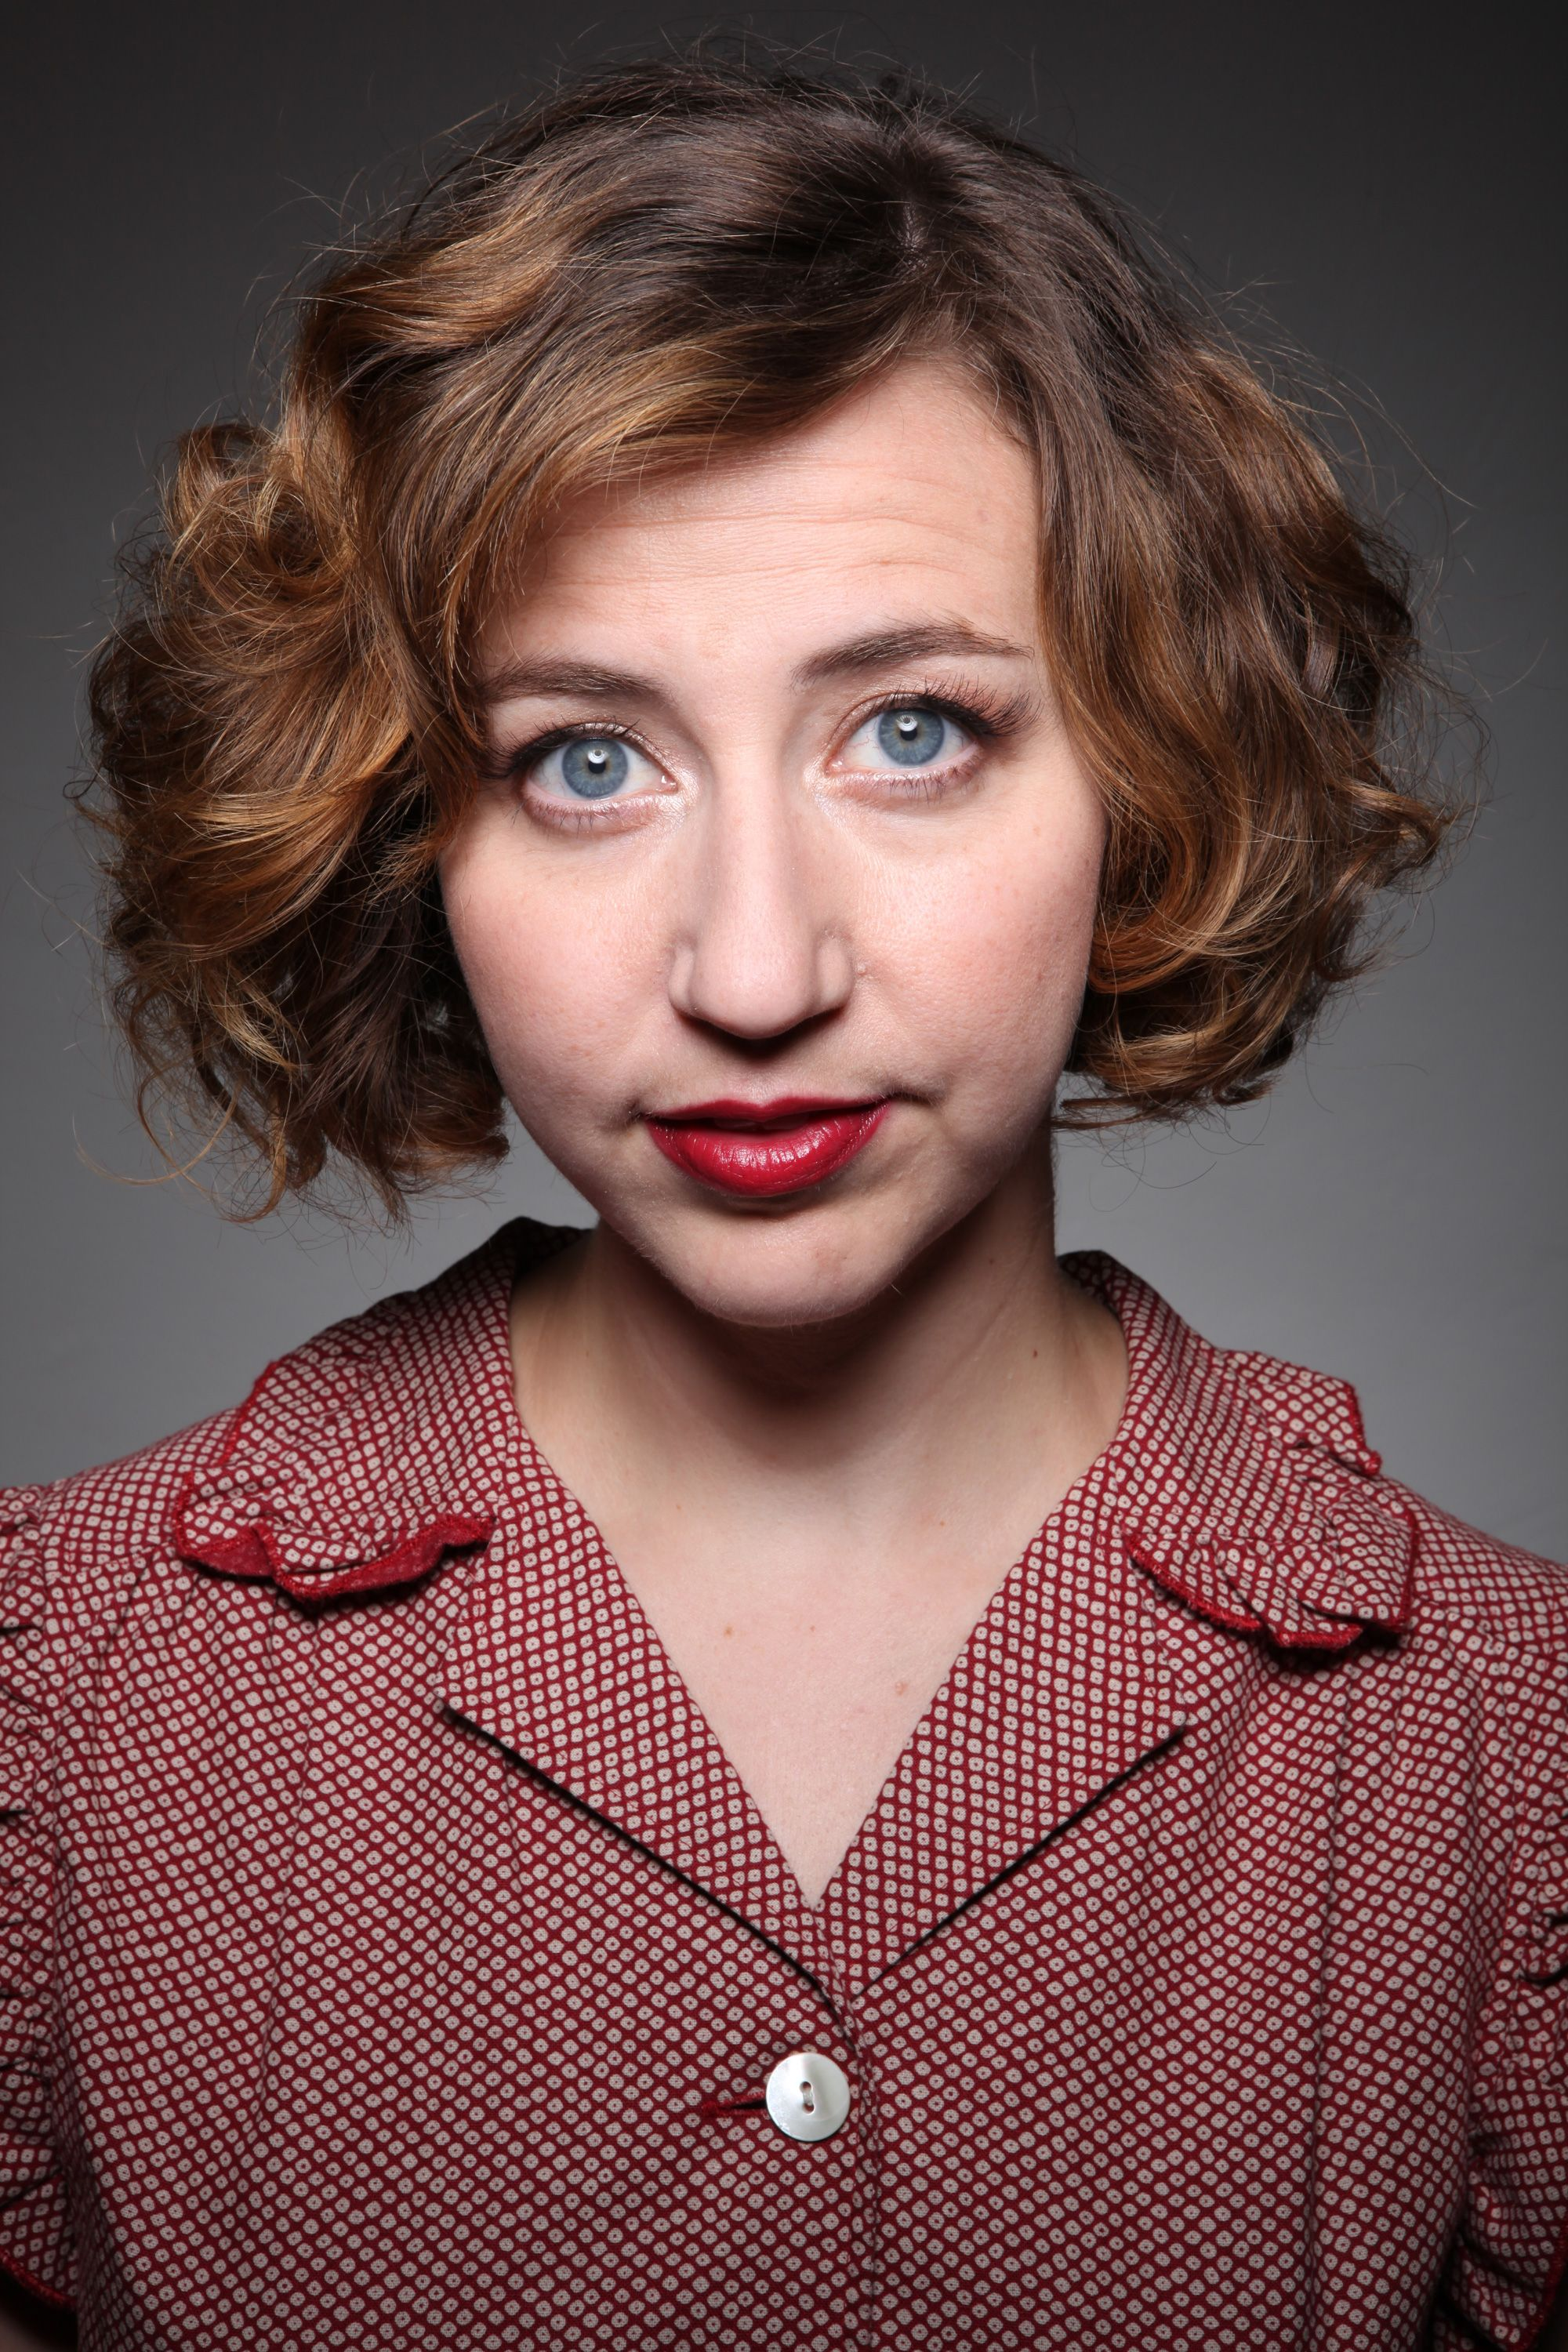 Kristen Schaal naked (41 photos), Sexy, Sideboobs, Feet, panties 2019